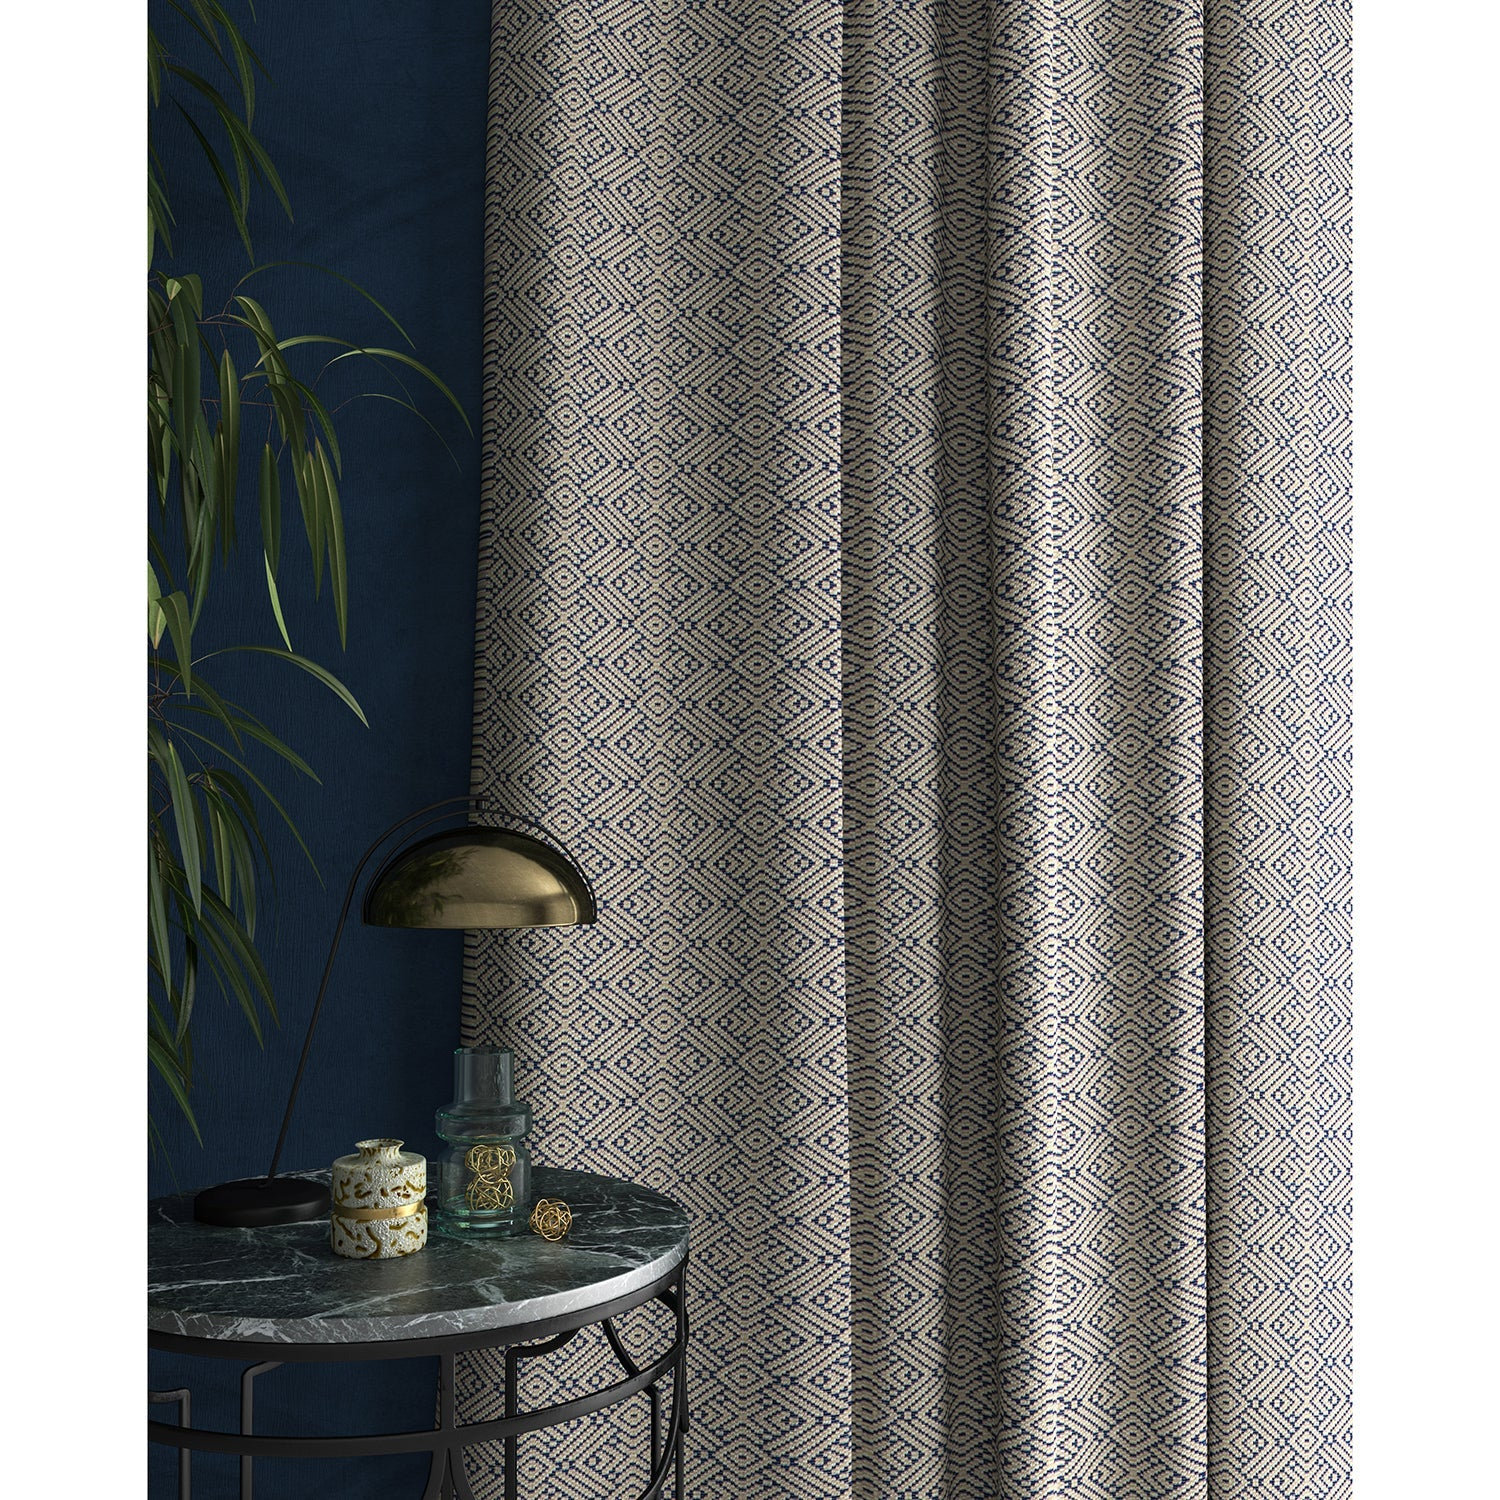 Curtains in a indigo blue geometric weave fabric